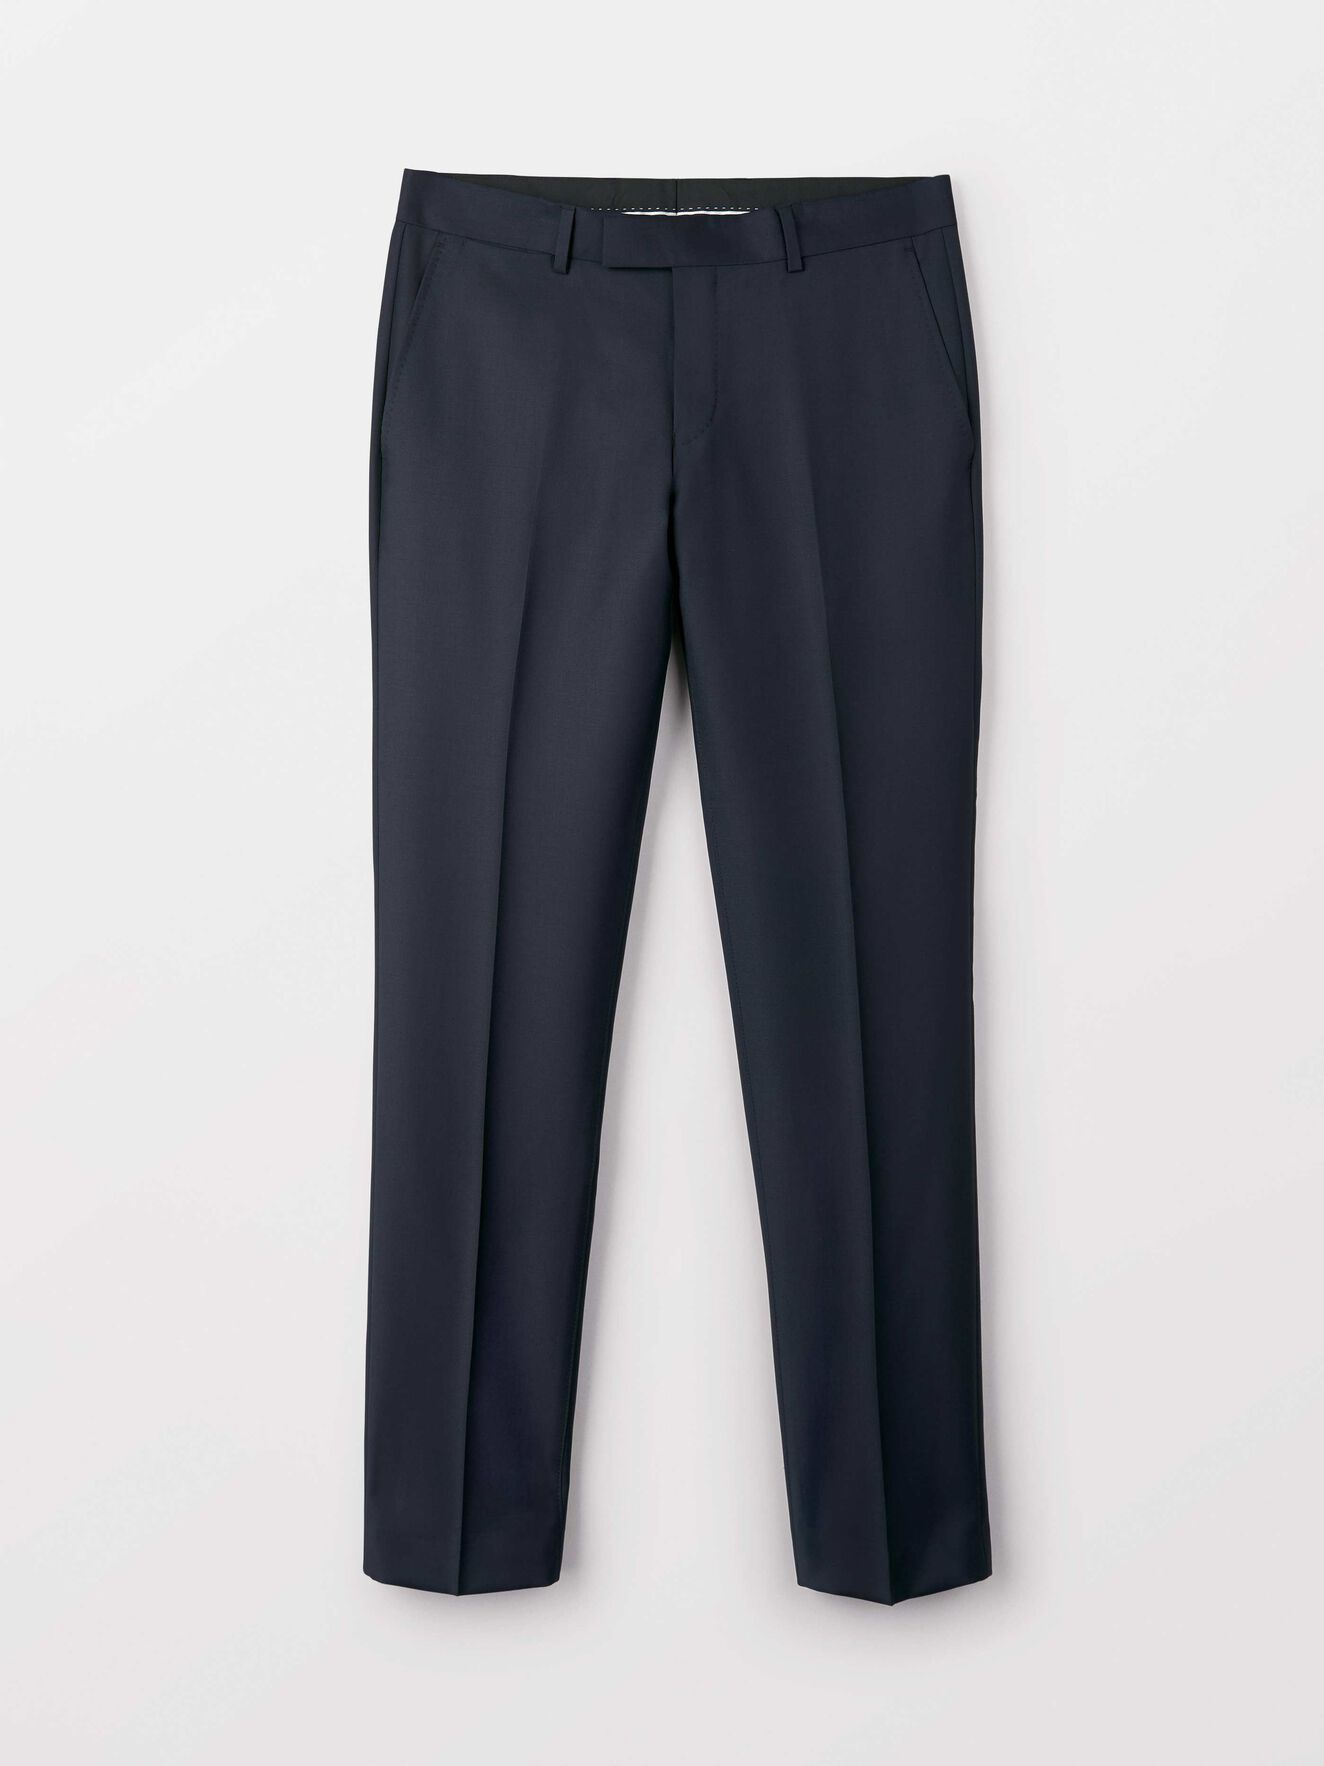 Tain Trousers (Short Size) in Light Ink from Tiger of Sweden